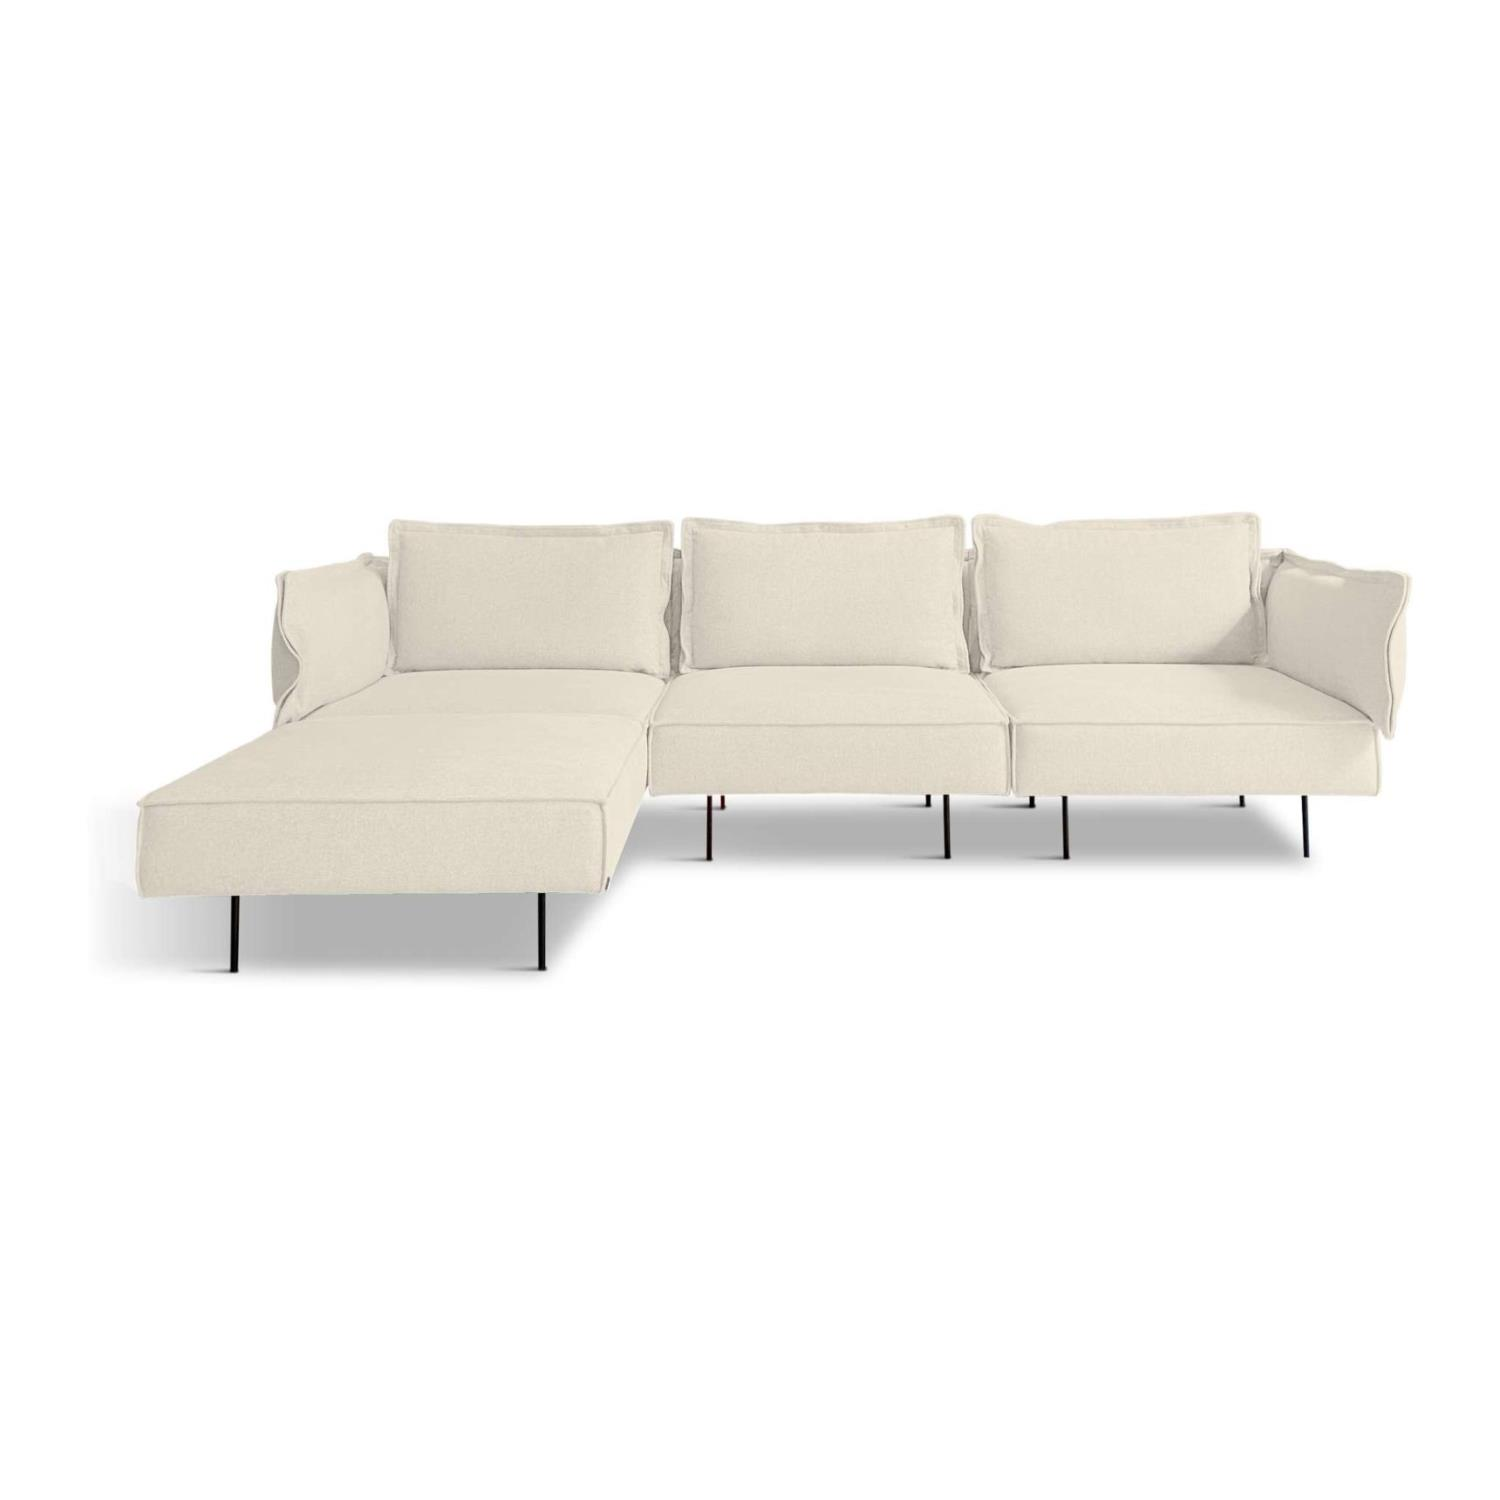 3-Seat Modular Sofa With Chaise